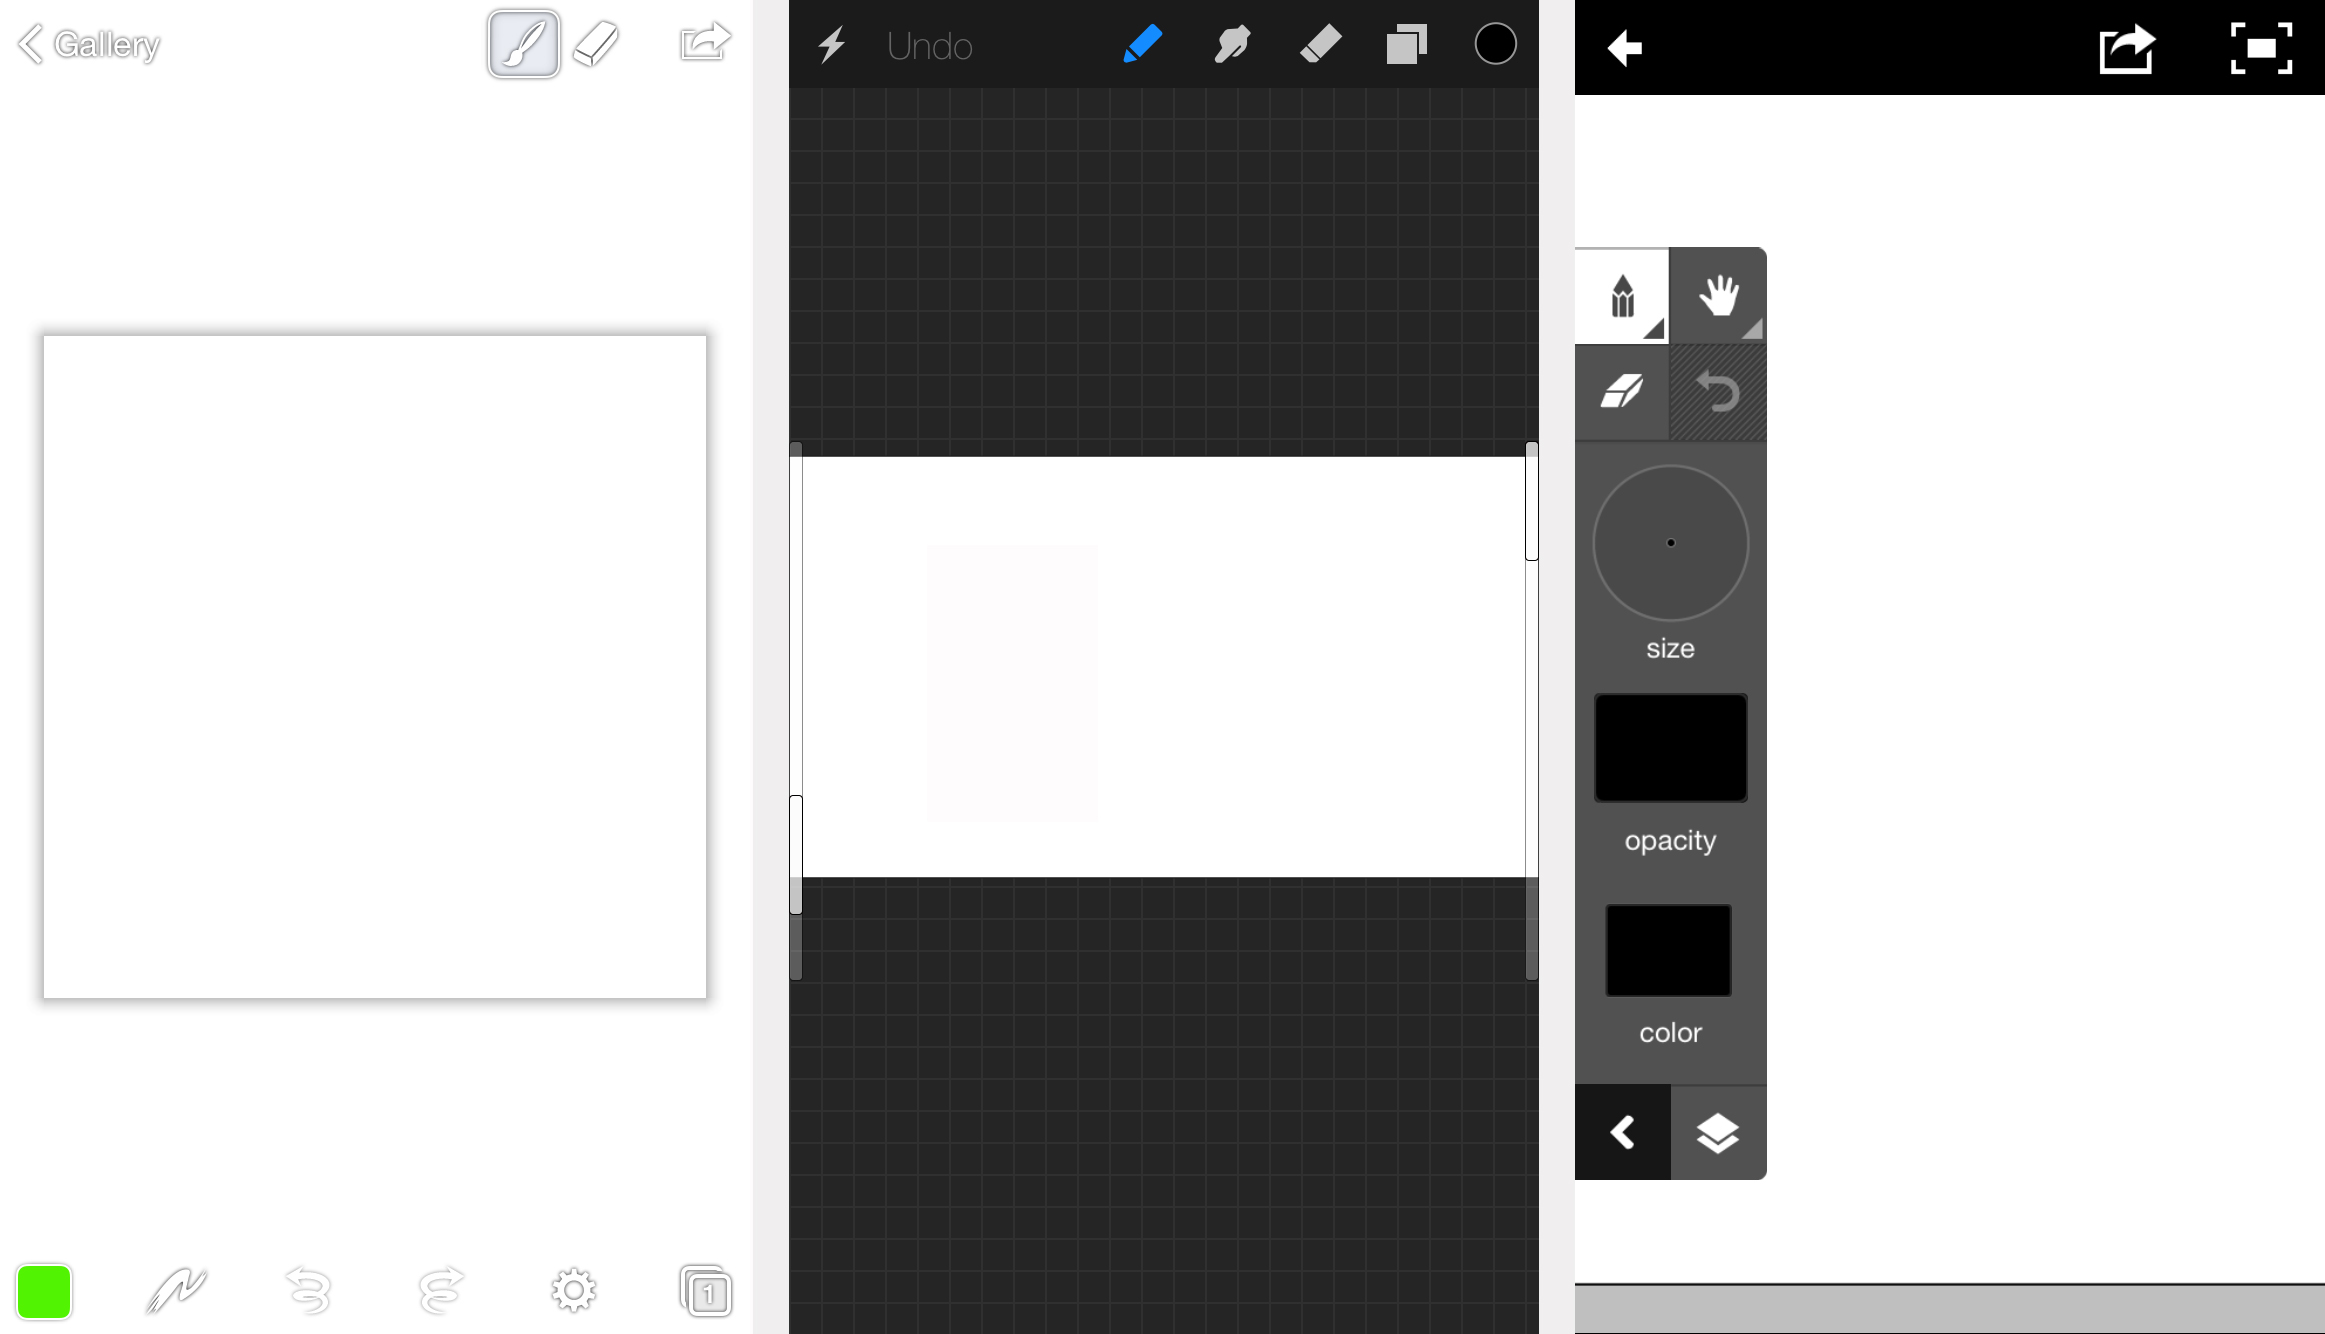 iPhone drawing app screenshots